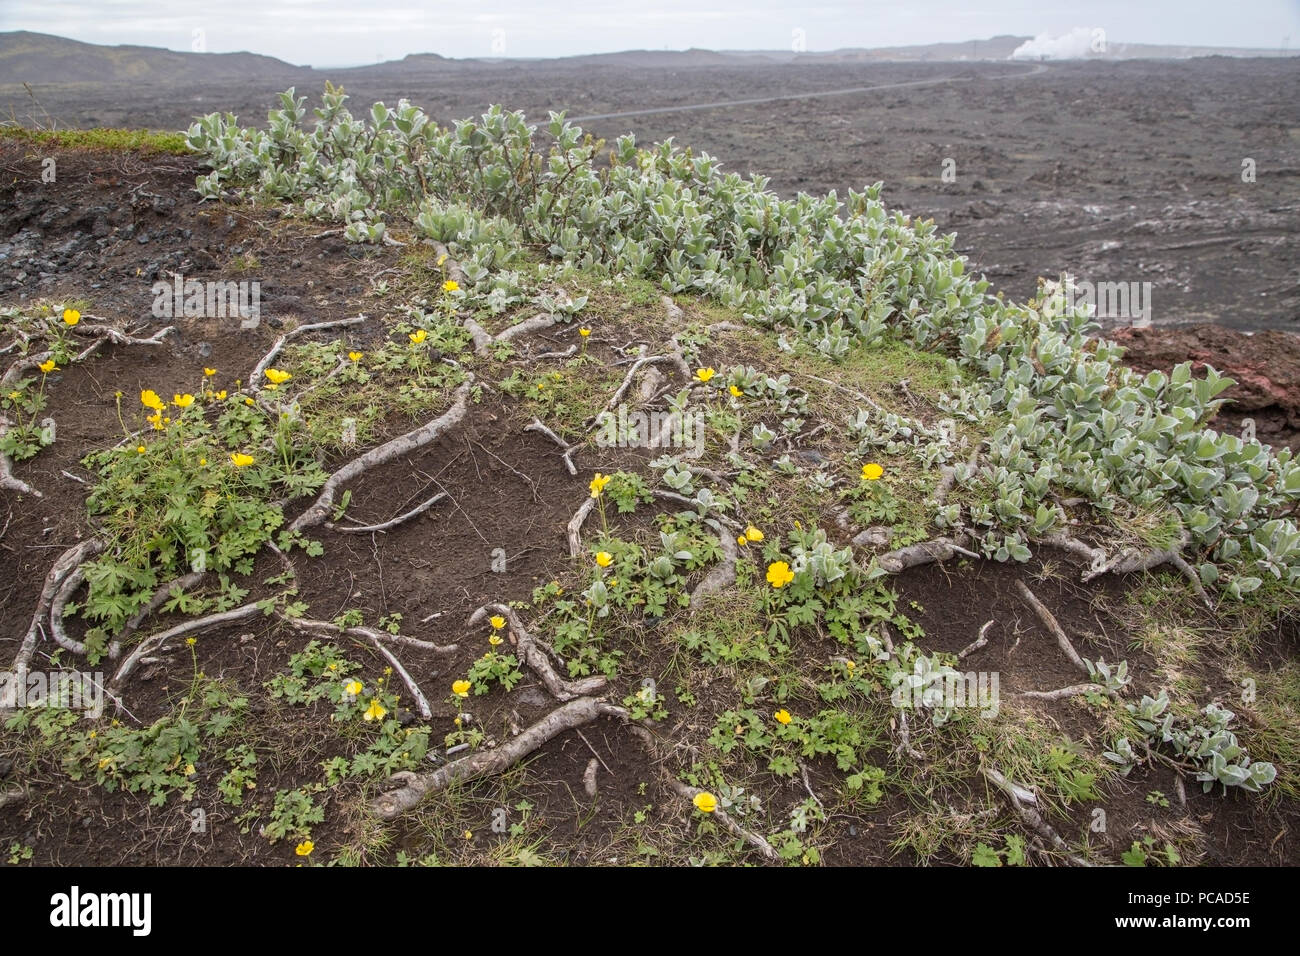 polar willow Salix polaris growing on barren volcanic landscape, Iceland - Stock Image